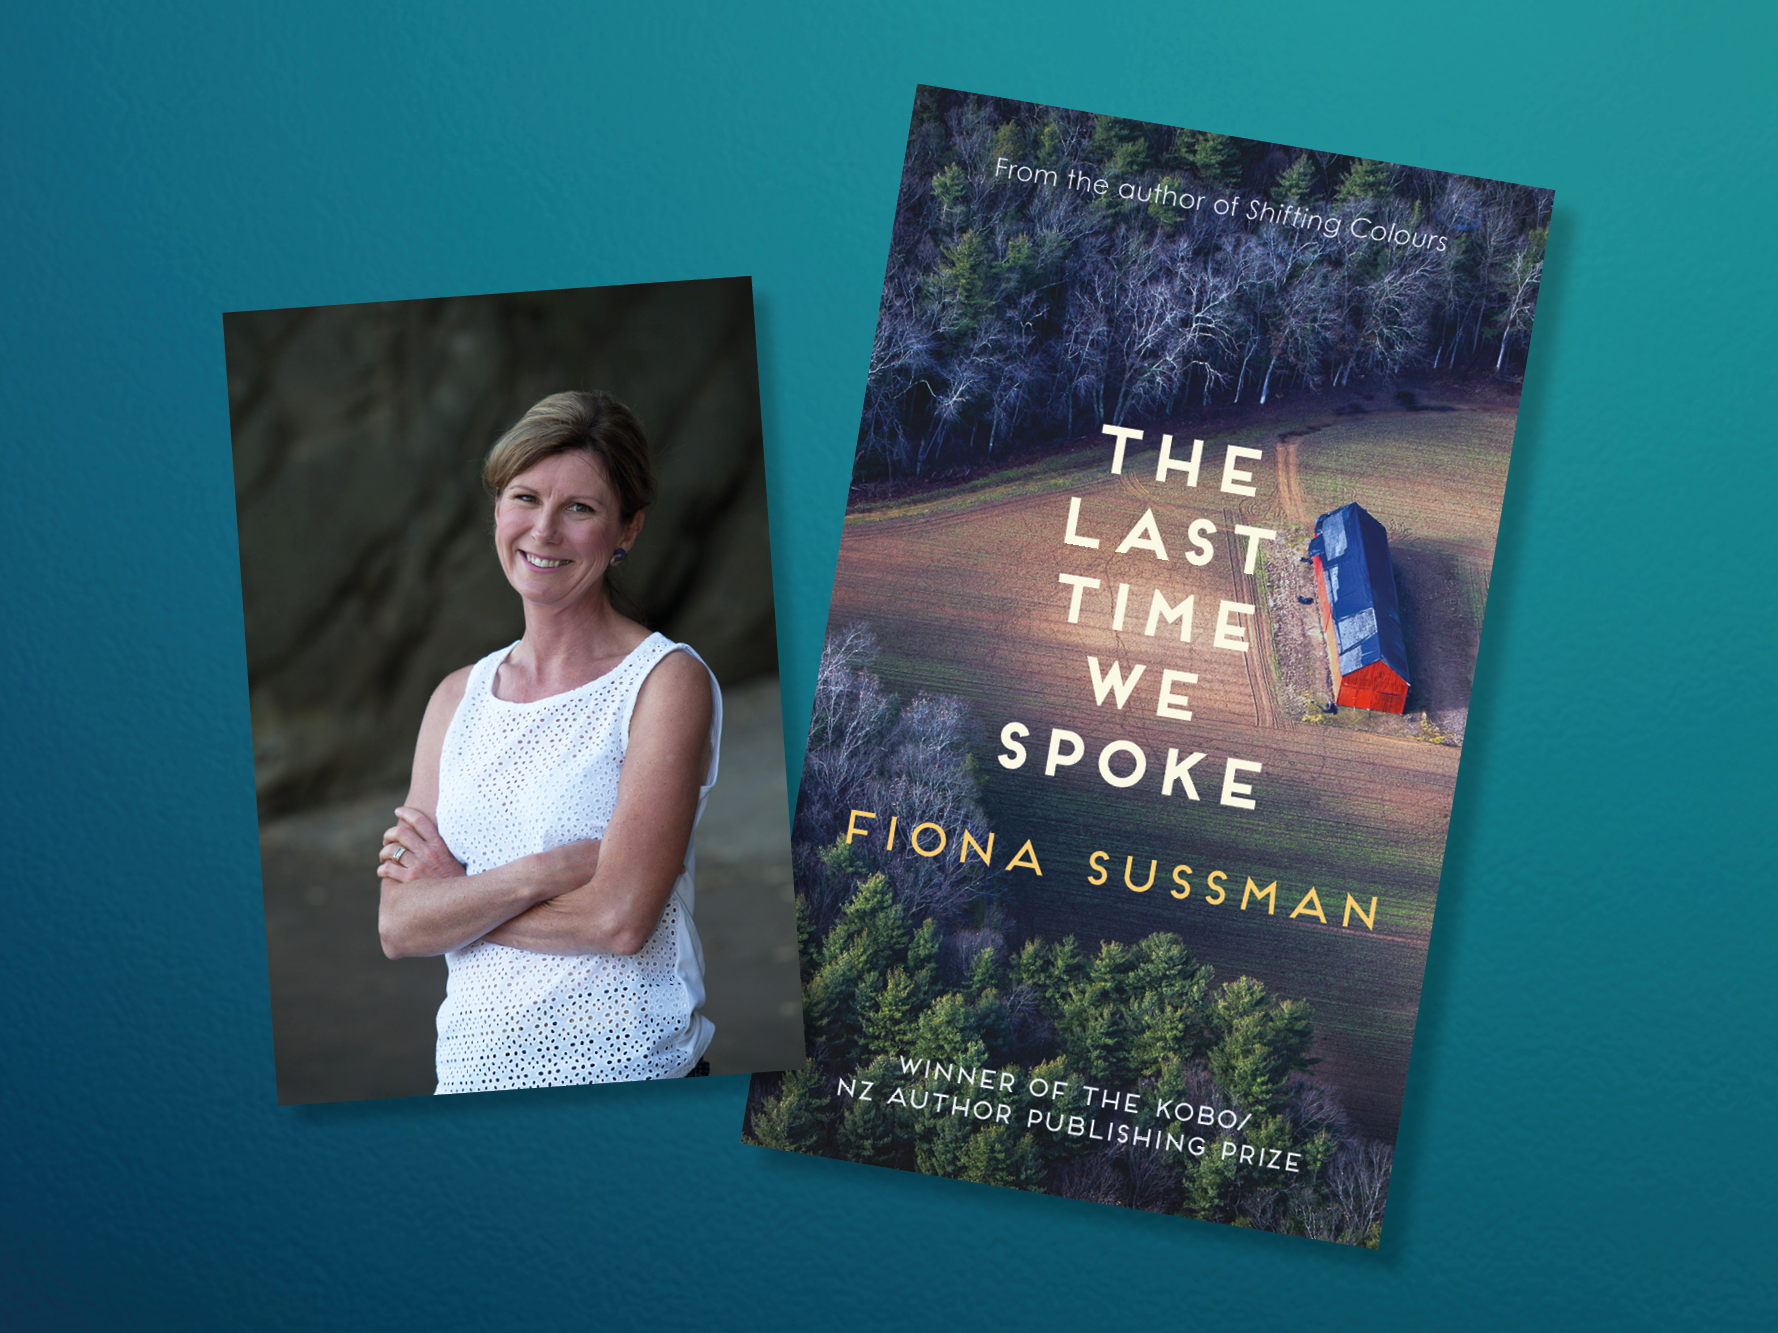 The Author Talks: An Evening with Fiona Sussman